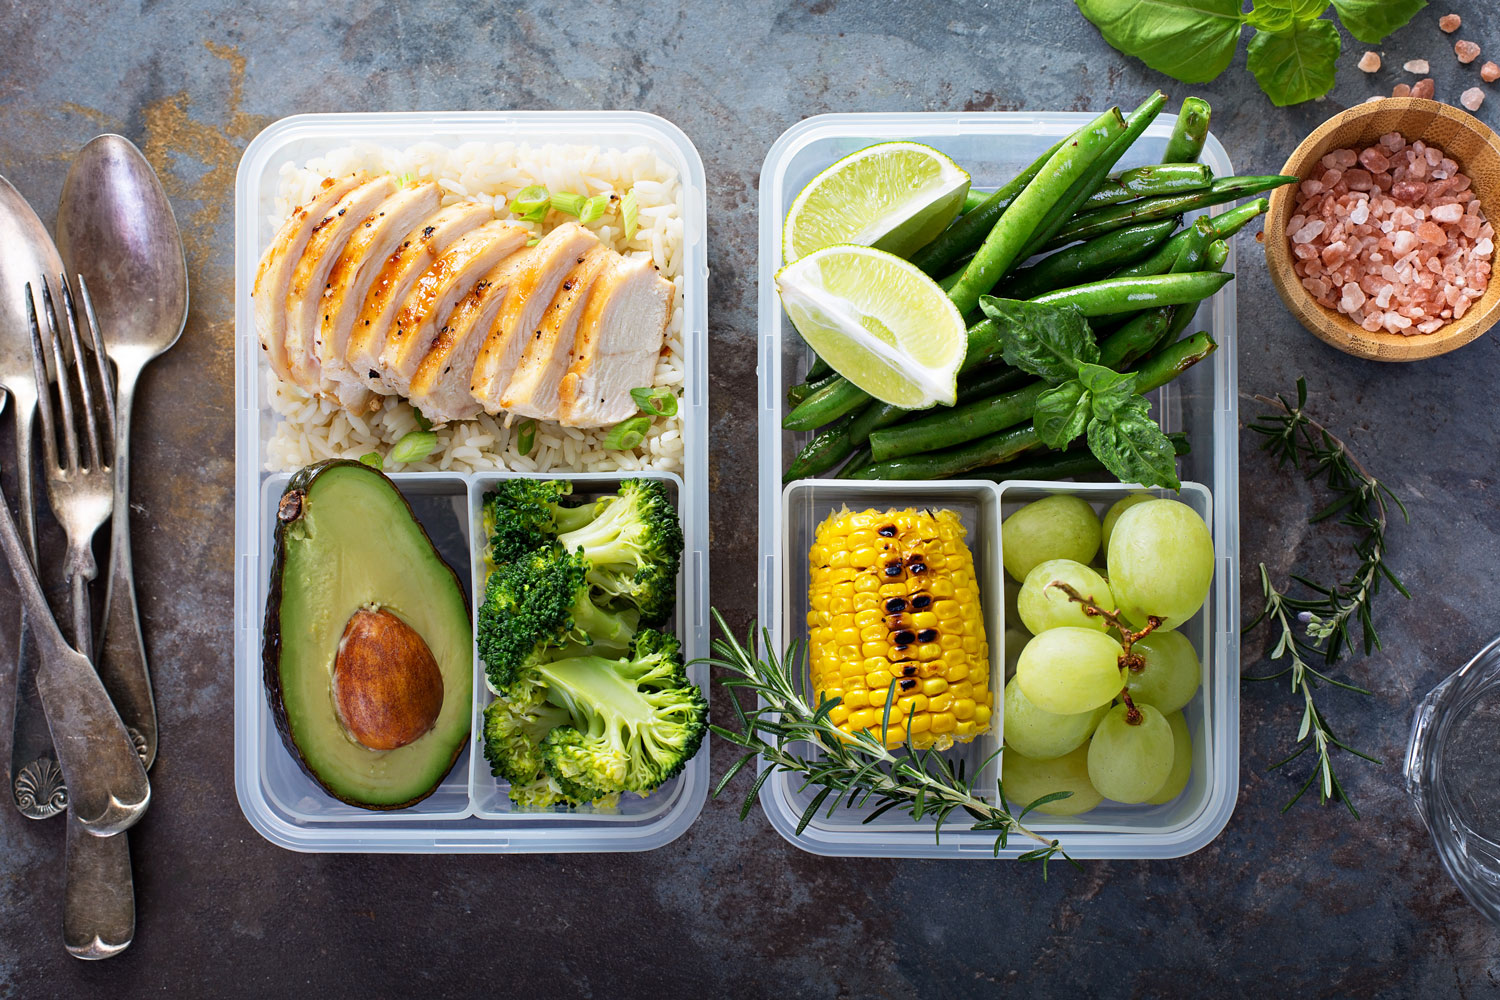 Meal Prepping: The Key to Saving Time and Money - Palm Beach Gardens